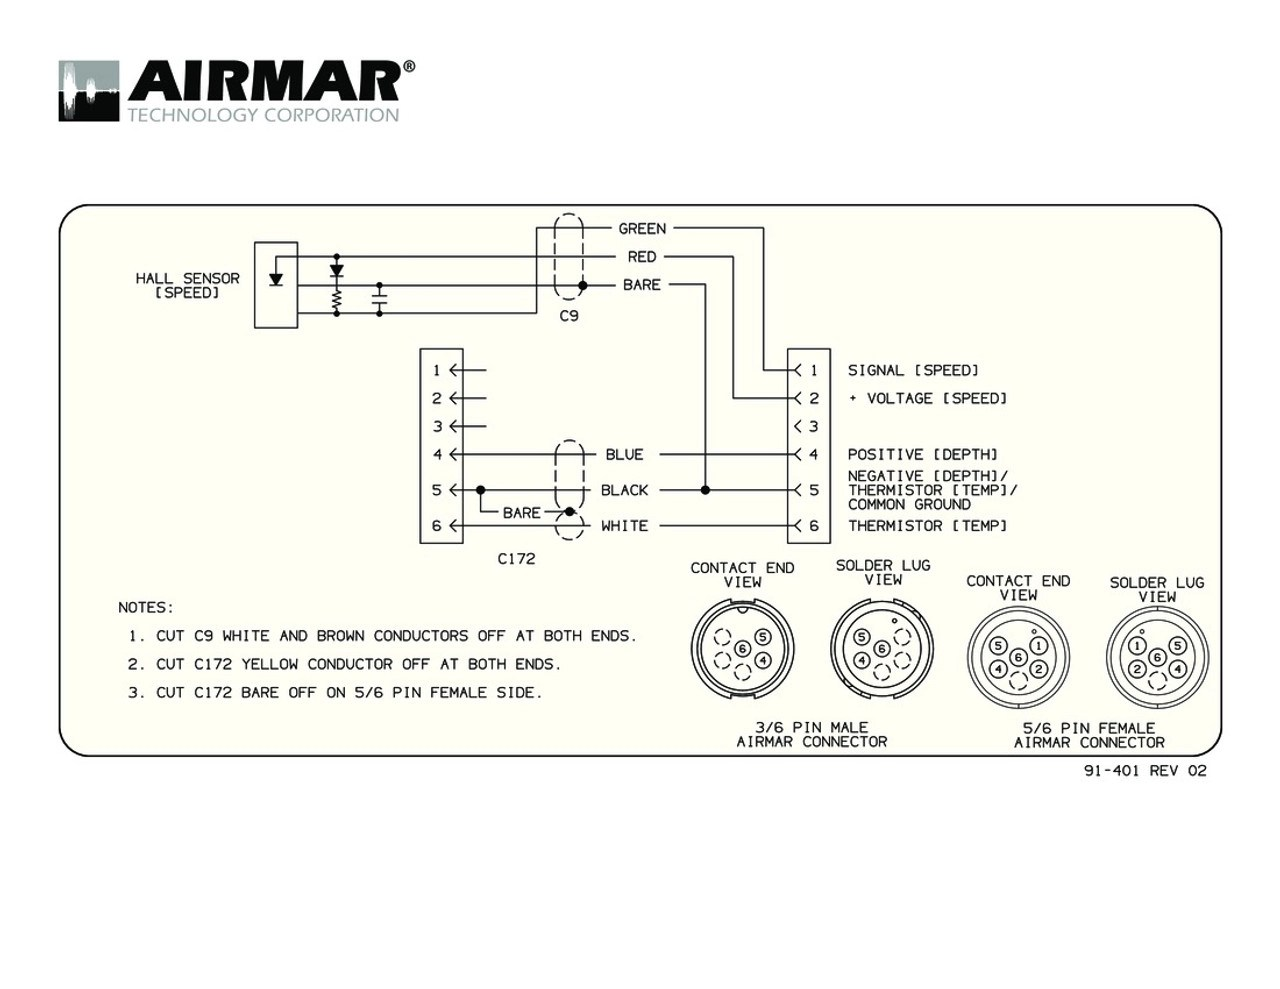 airmar wiring diagram garmin 6 pin s blue bottle marinespeed sensor with y cable [ 1100 x 850 Pixel ]